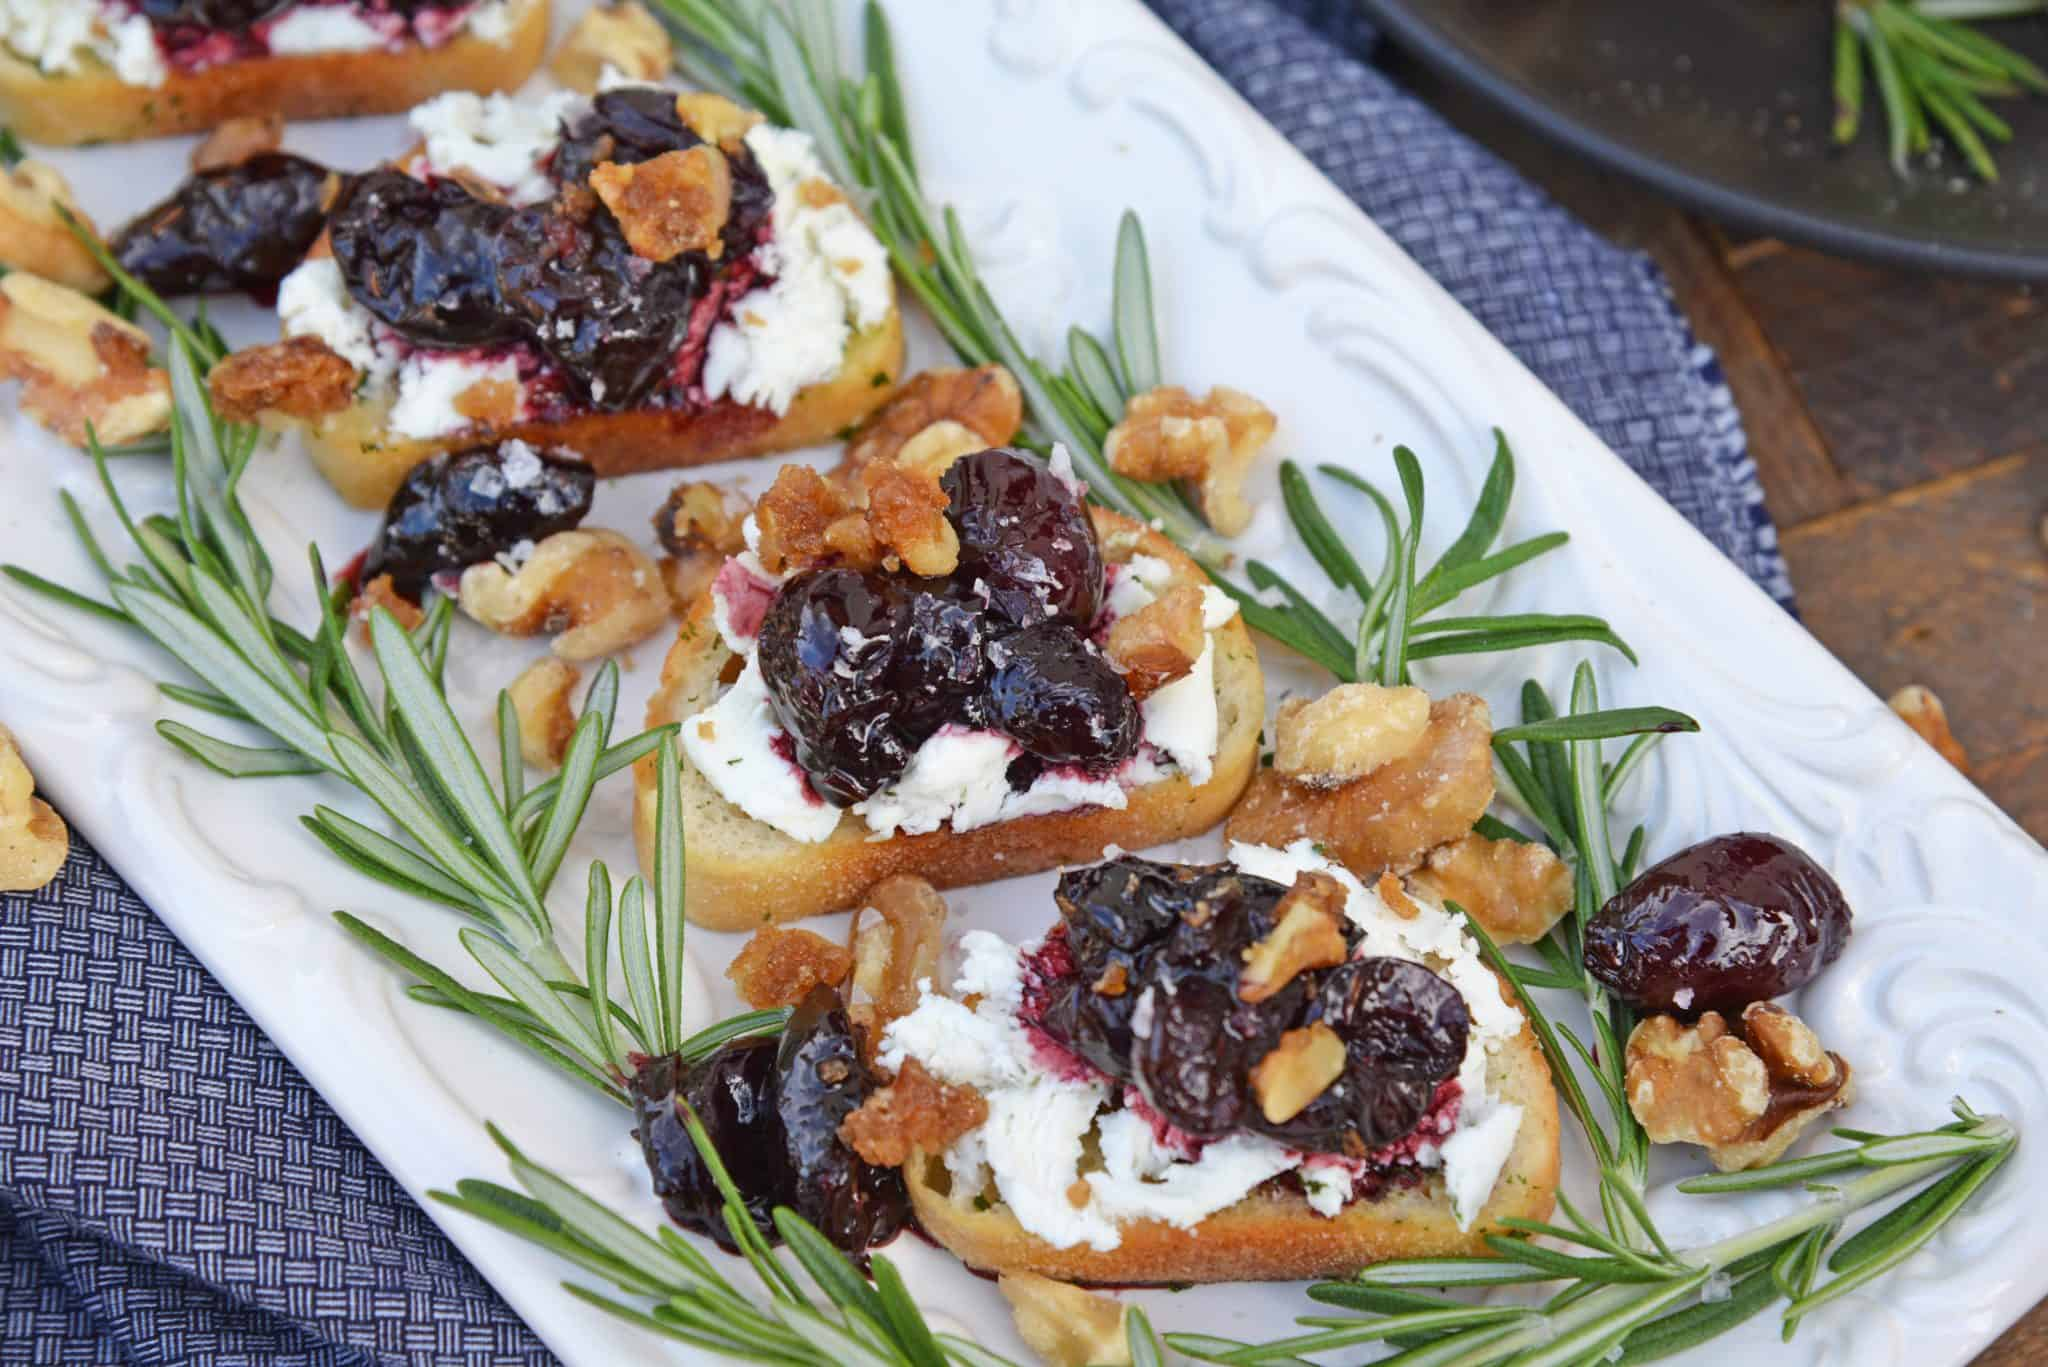 Balsamic Cherry Crostini is an easy appetizer using goat cheese and a tangy cherry balsamic reduction. The perfect holiday appetizer recipe!#crostinirecipes #easyappetizerrecipes www.savoryexperiments.com